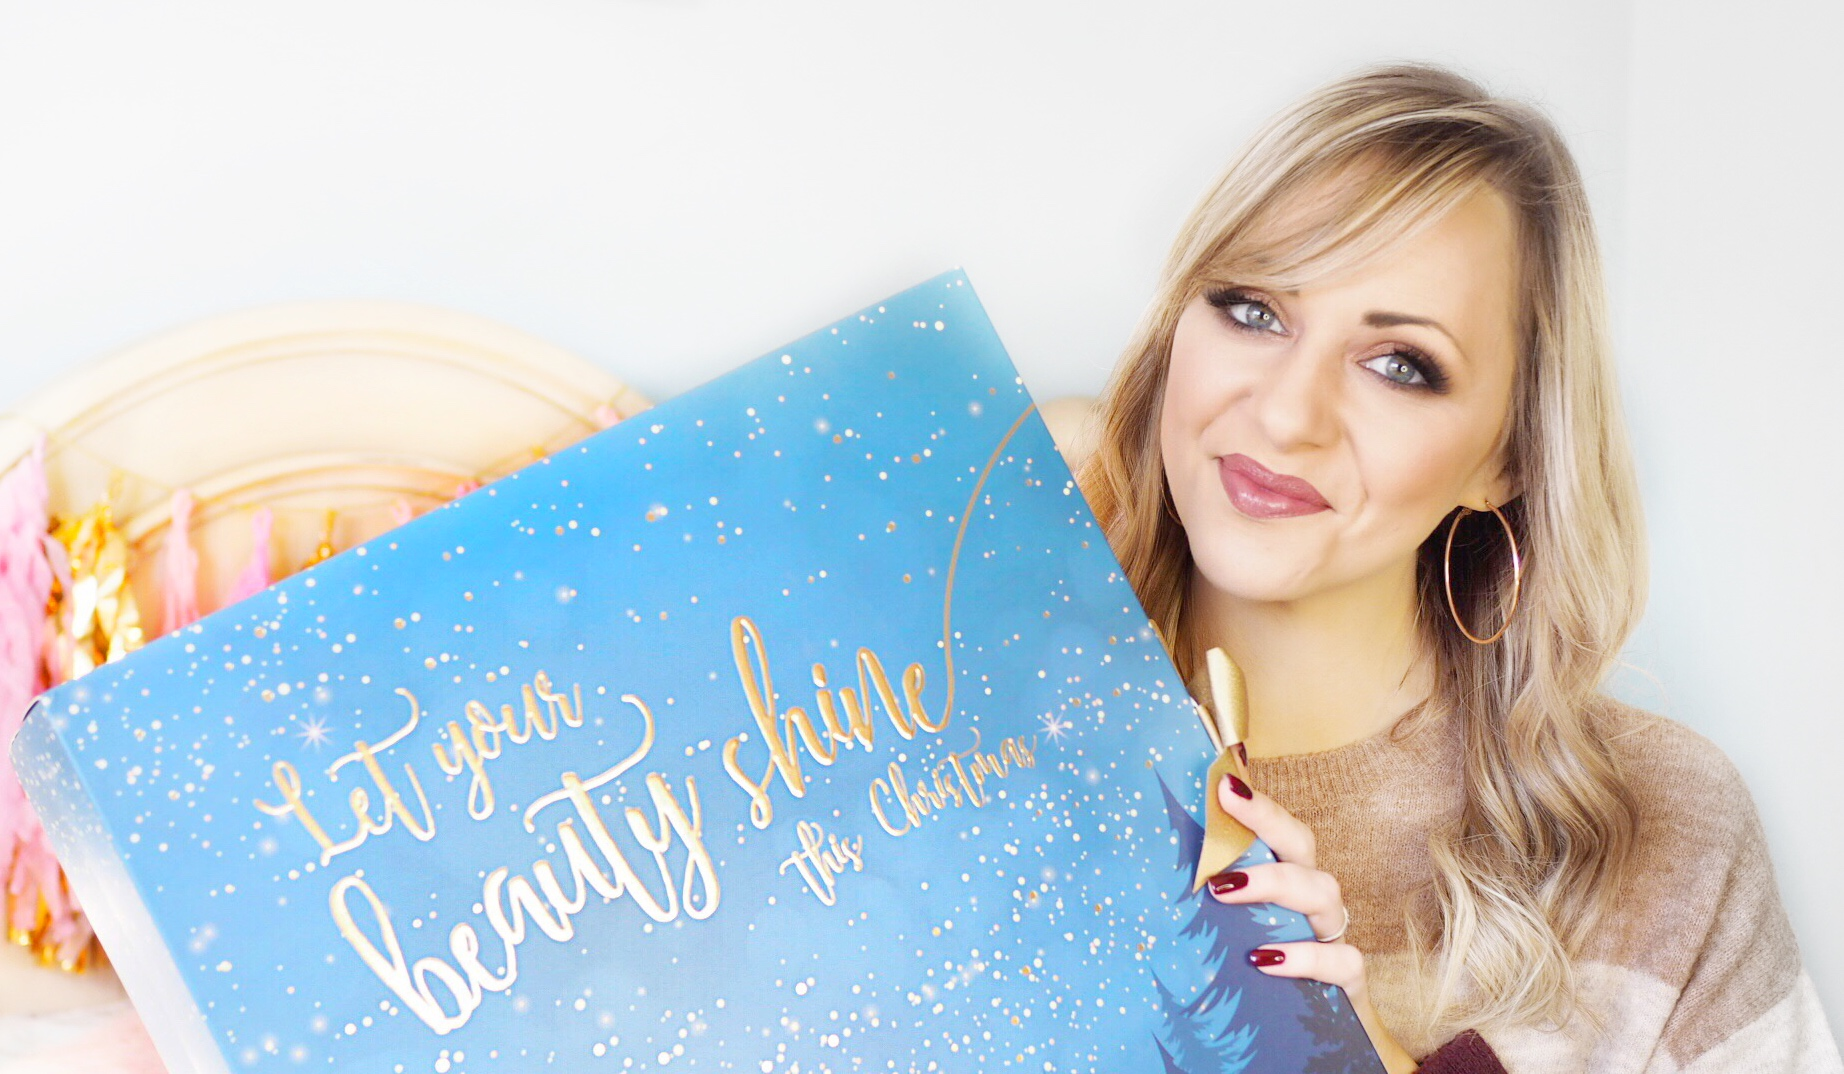 Latest In Beauty Advent Calendar Unboxing!